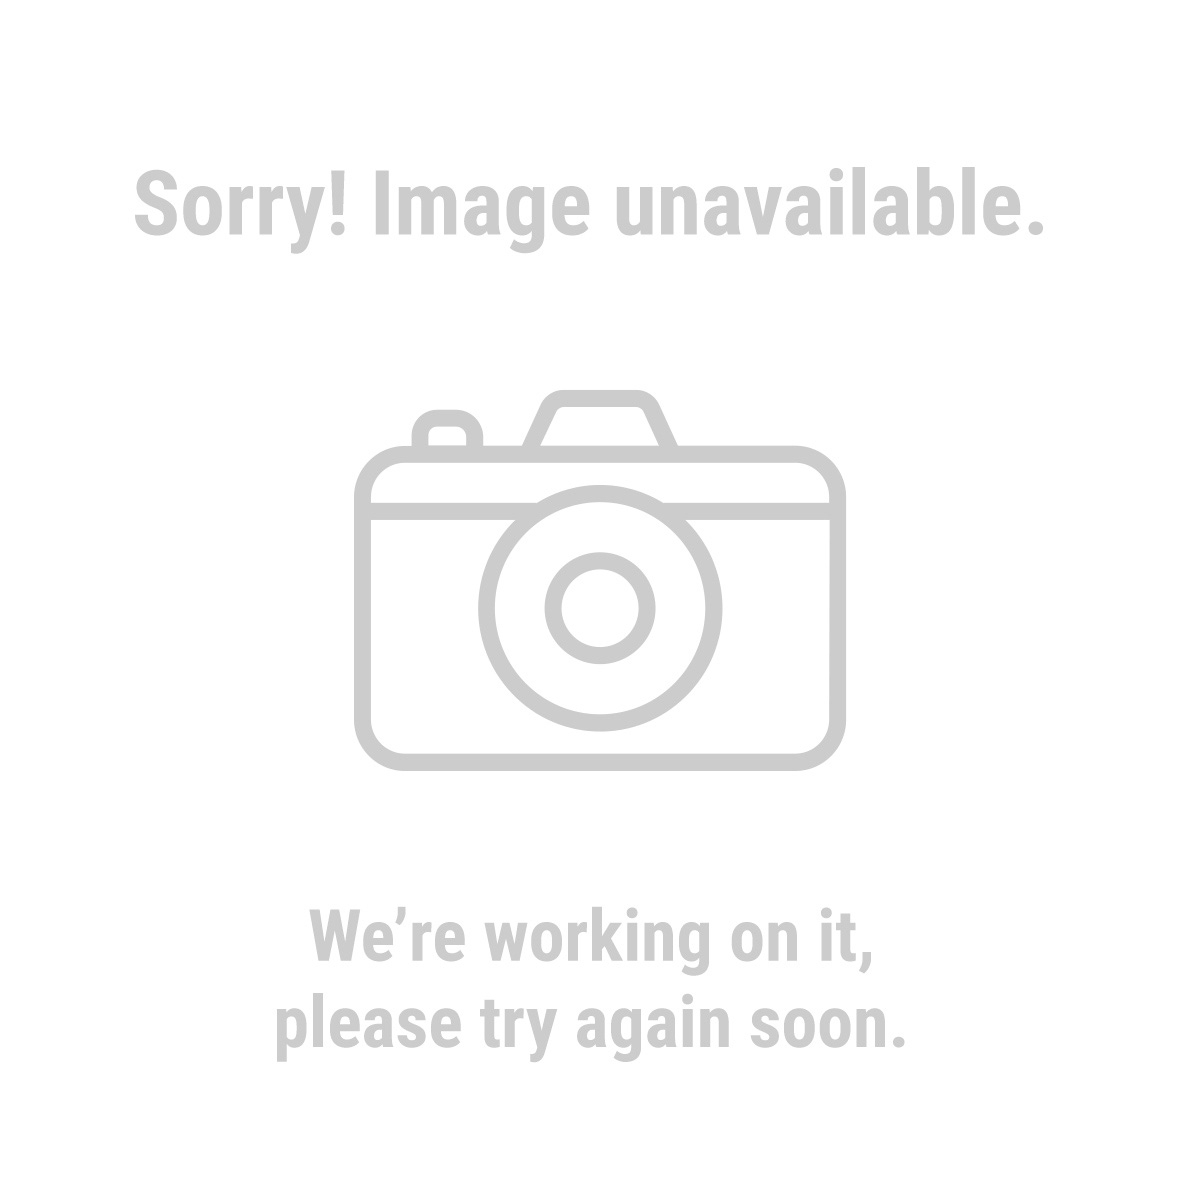 HFT 61579 20 Piece Contractor Grade Trash Bags - 42 gal.